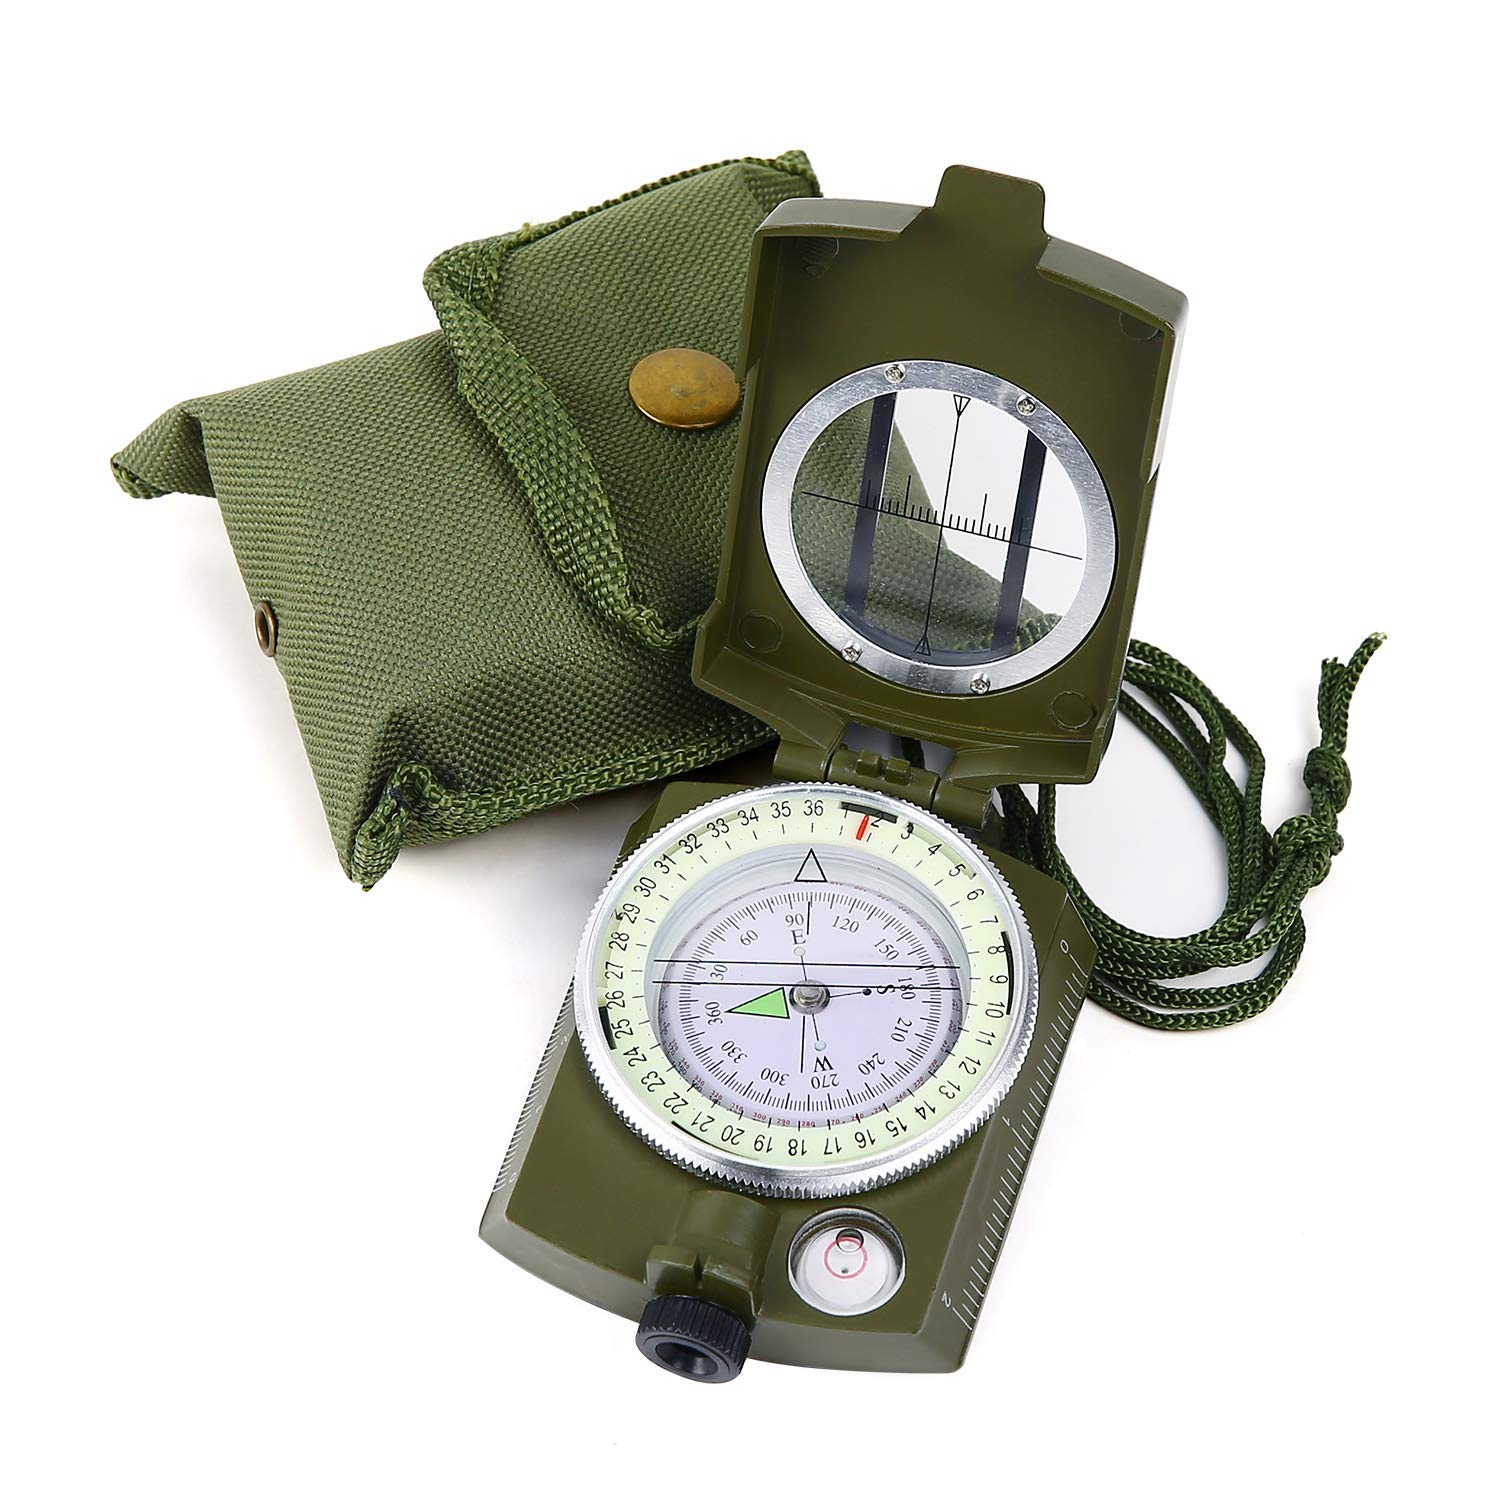 Sportneer Military Lensatic Sighting Compass